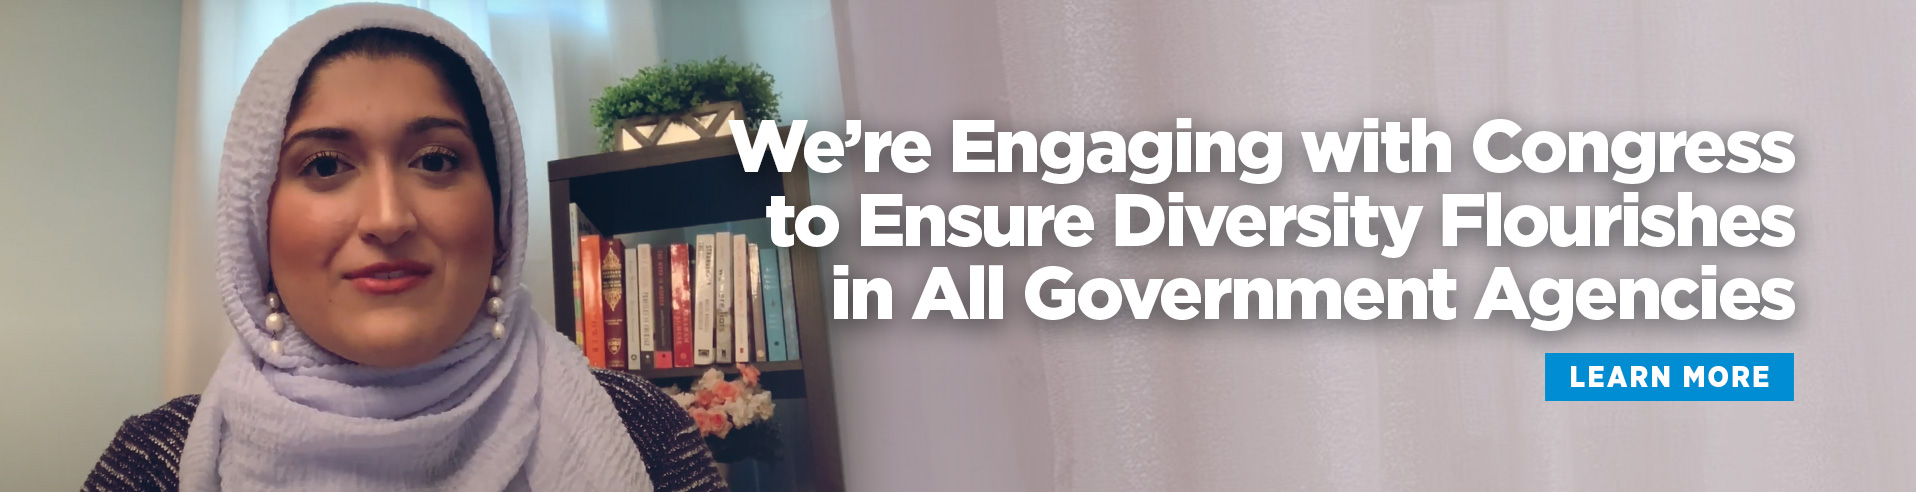 We're Engaging with Congress to Ensure Diversity Flourishes in All Government Agencies